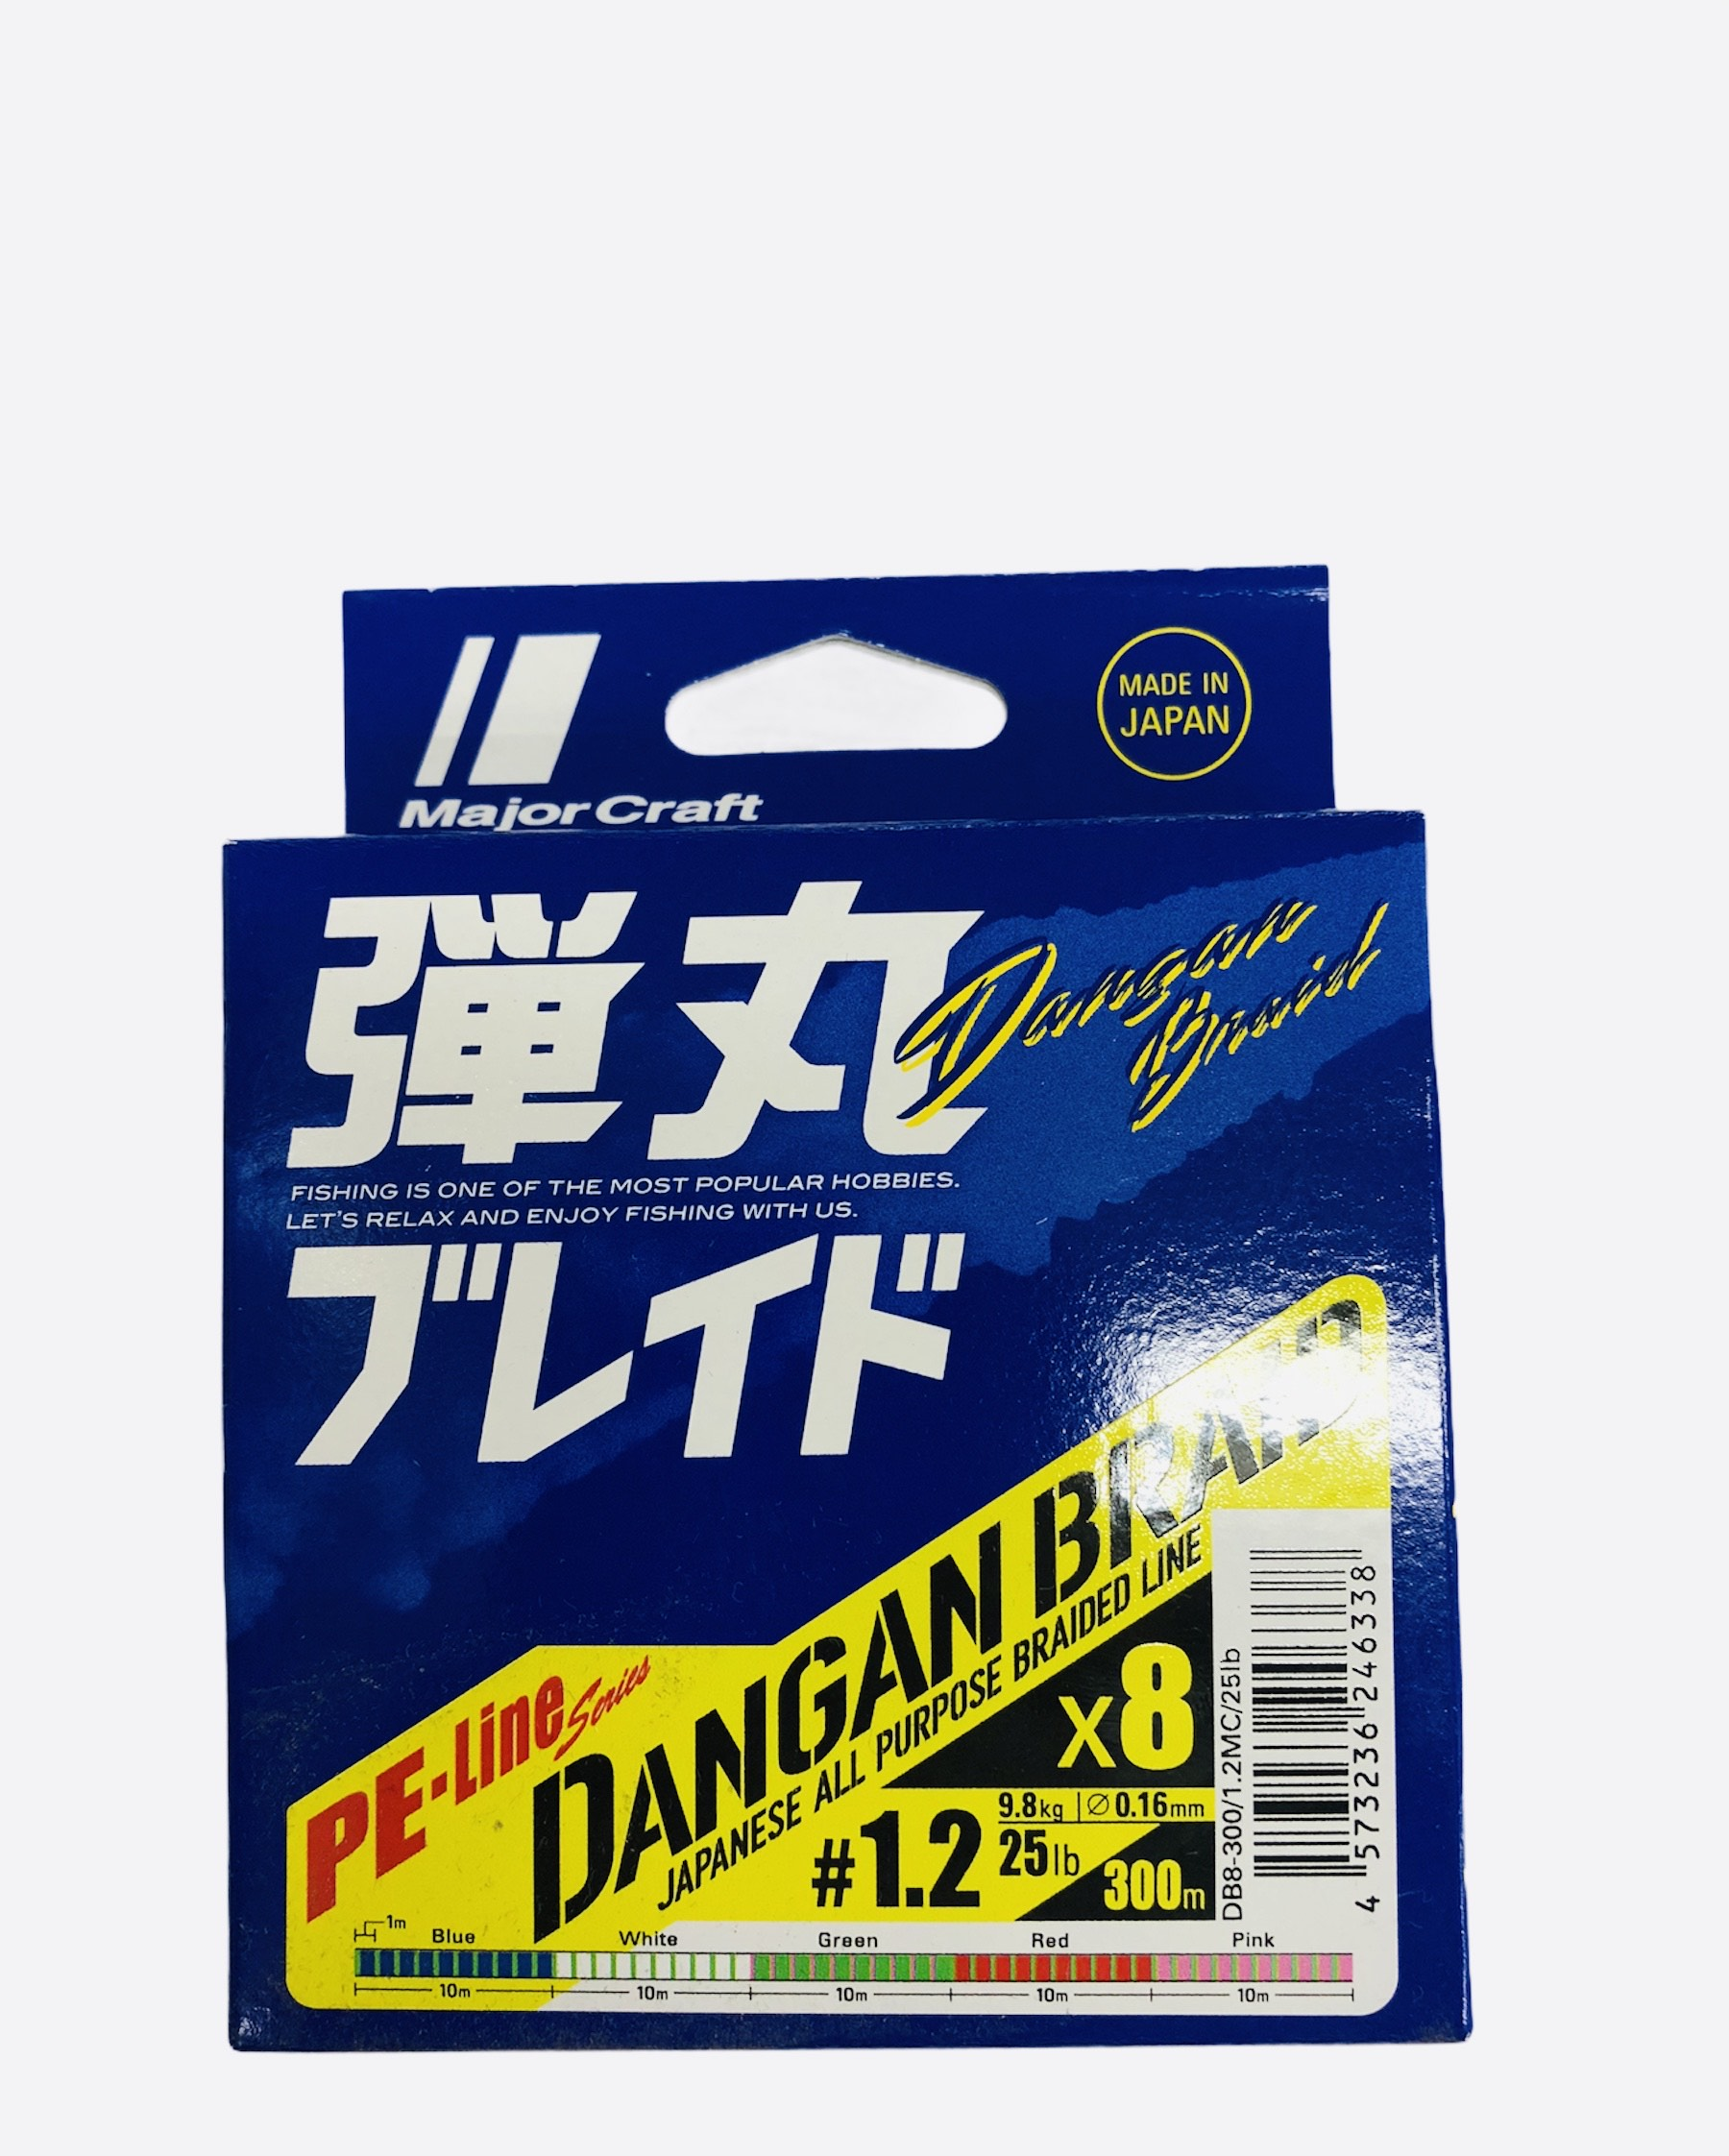 Majorcraft Dangan Braid 8X 0.16mm    300mts